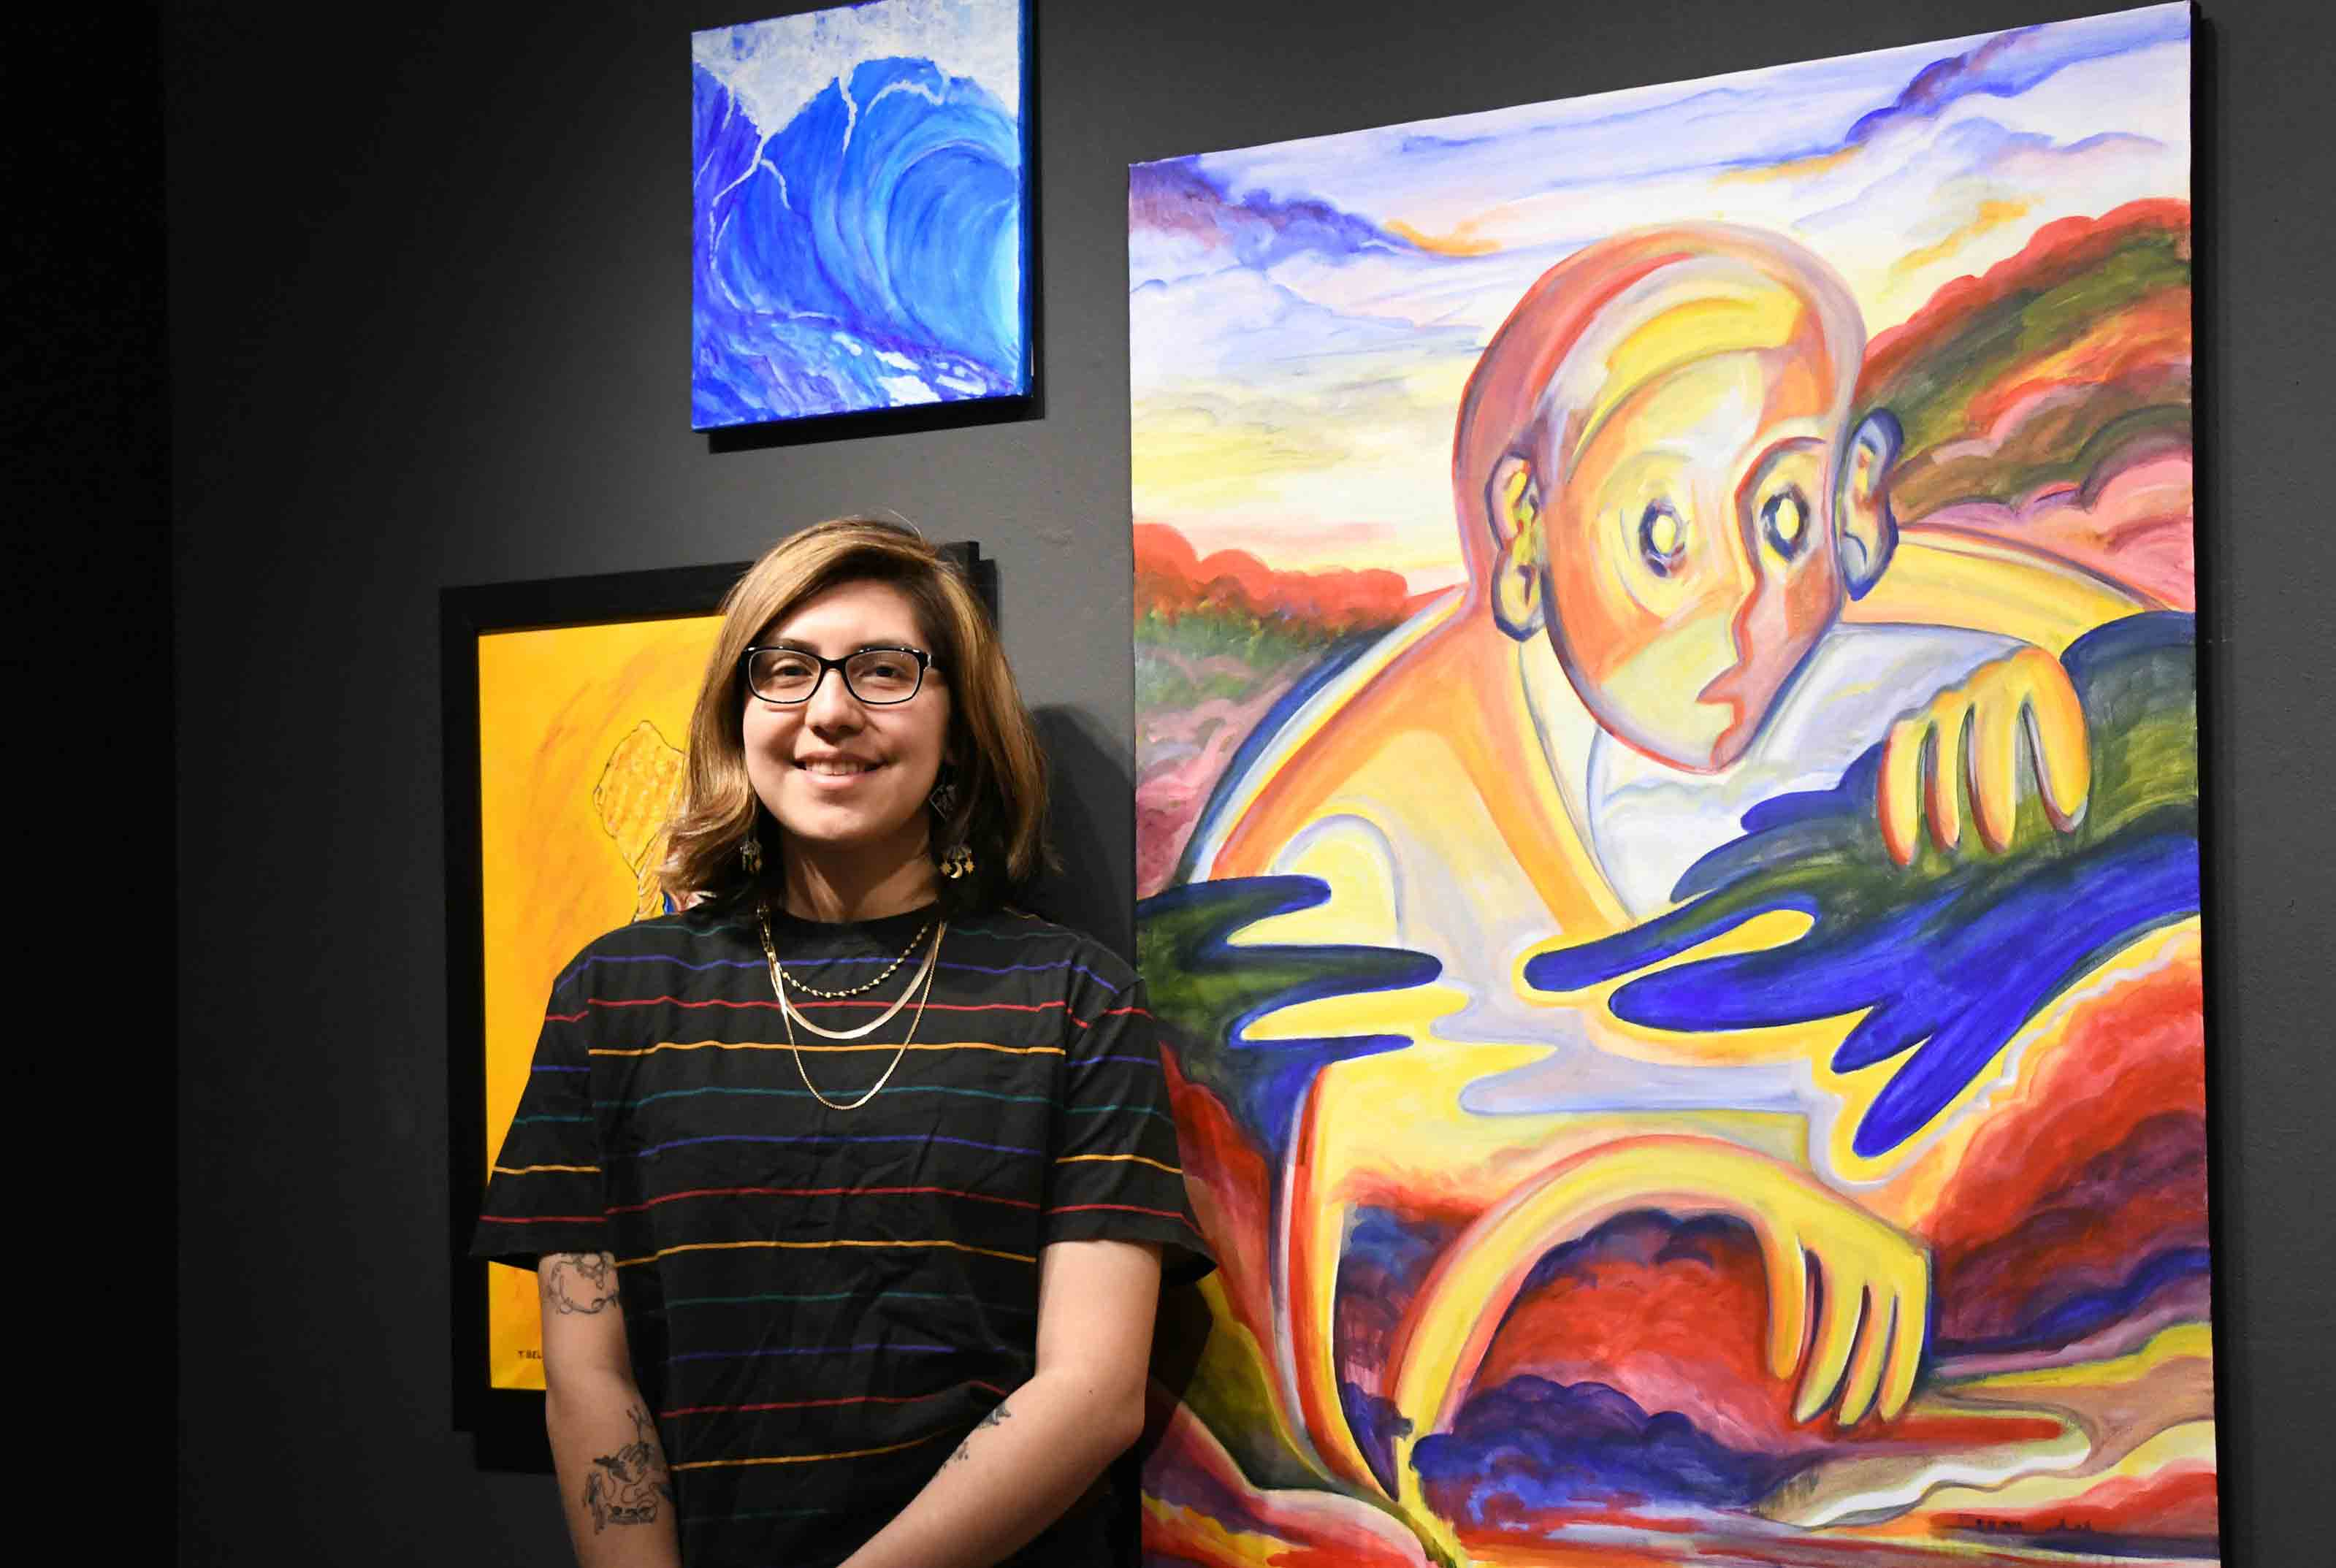 """Kiara Florez stands next to her painting """"The Wanderer,"""" one of the works on display in the Creative Connections exhibition at the Arts Center/Gallery."""